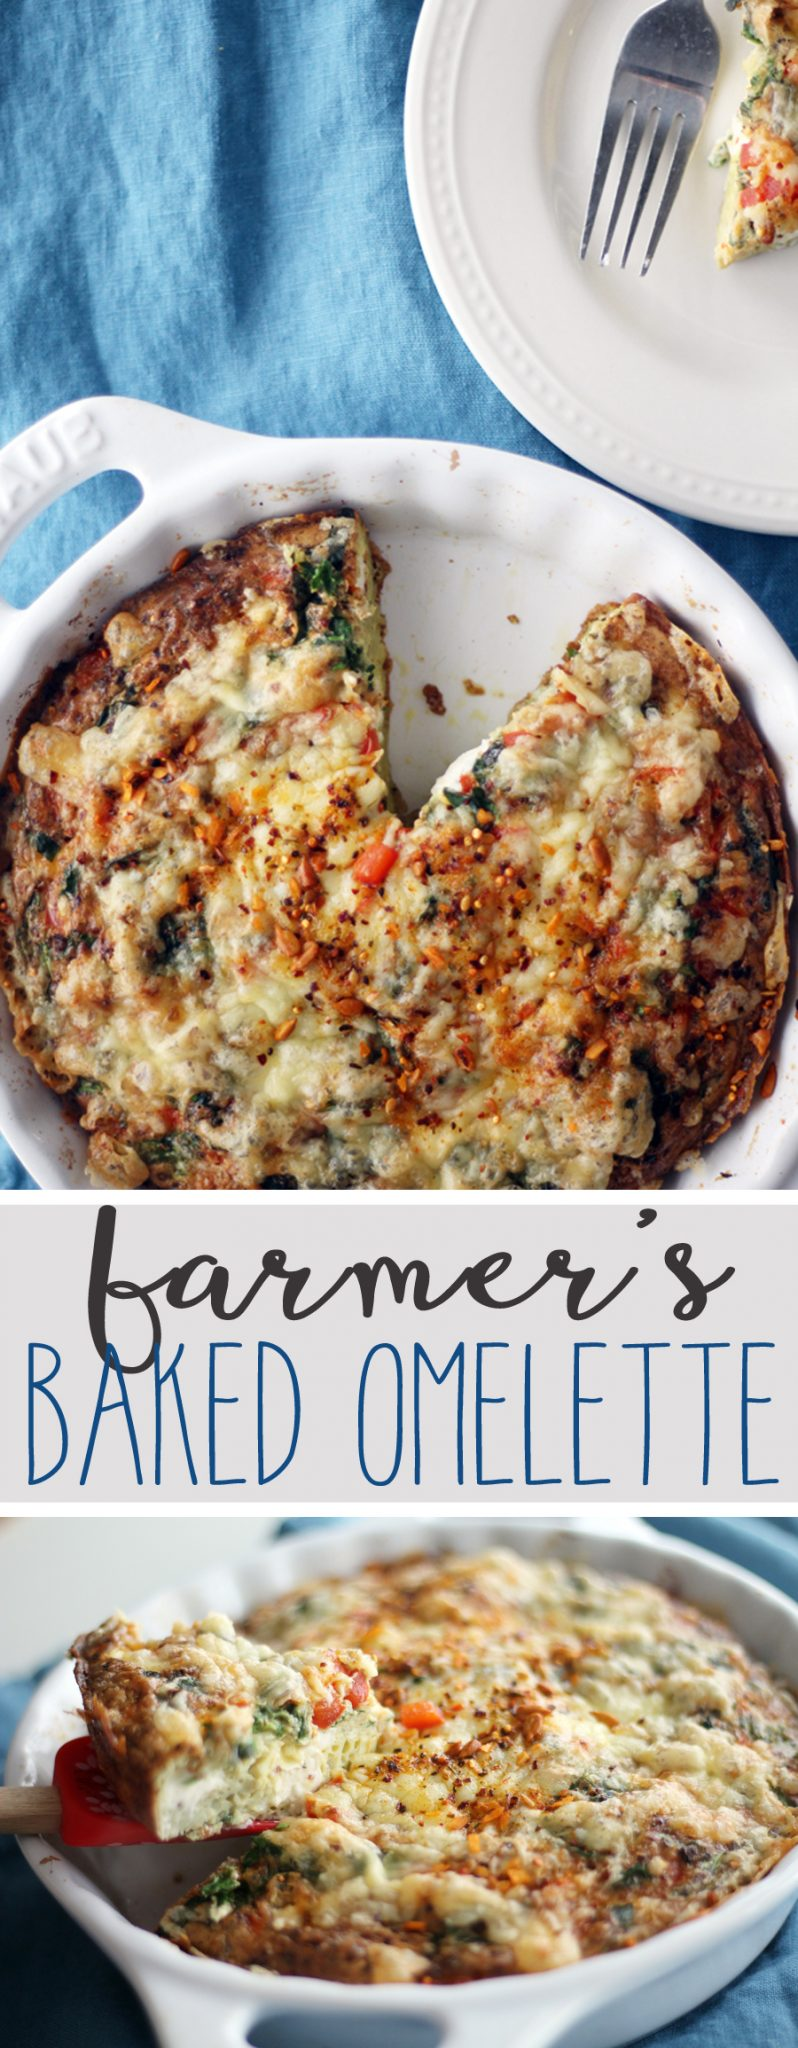 Make your mornings delicious with this easy and filling Farmers Baked Omelette with McCormick Breakfast Toppers.